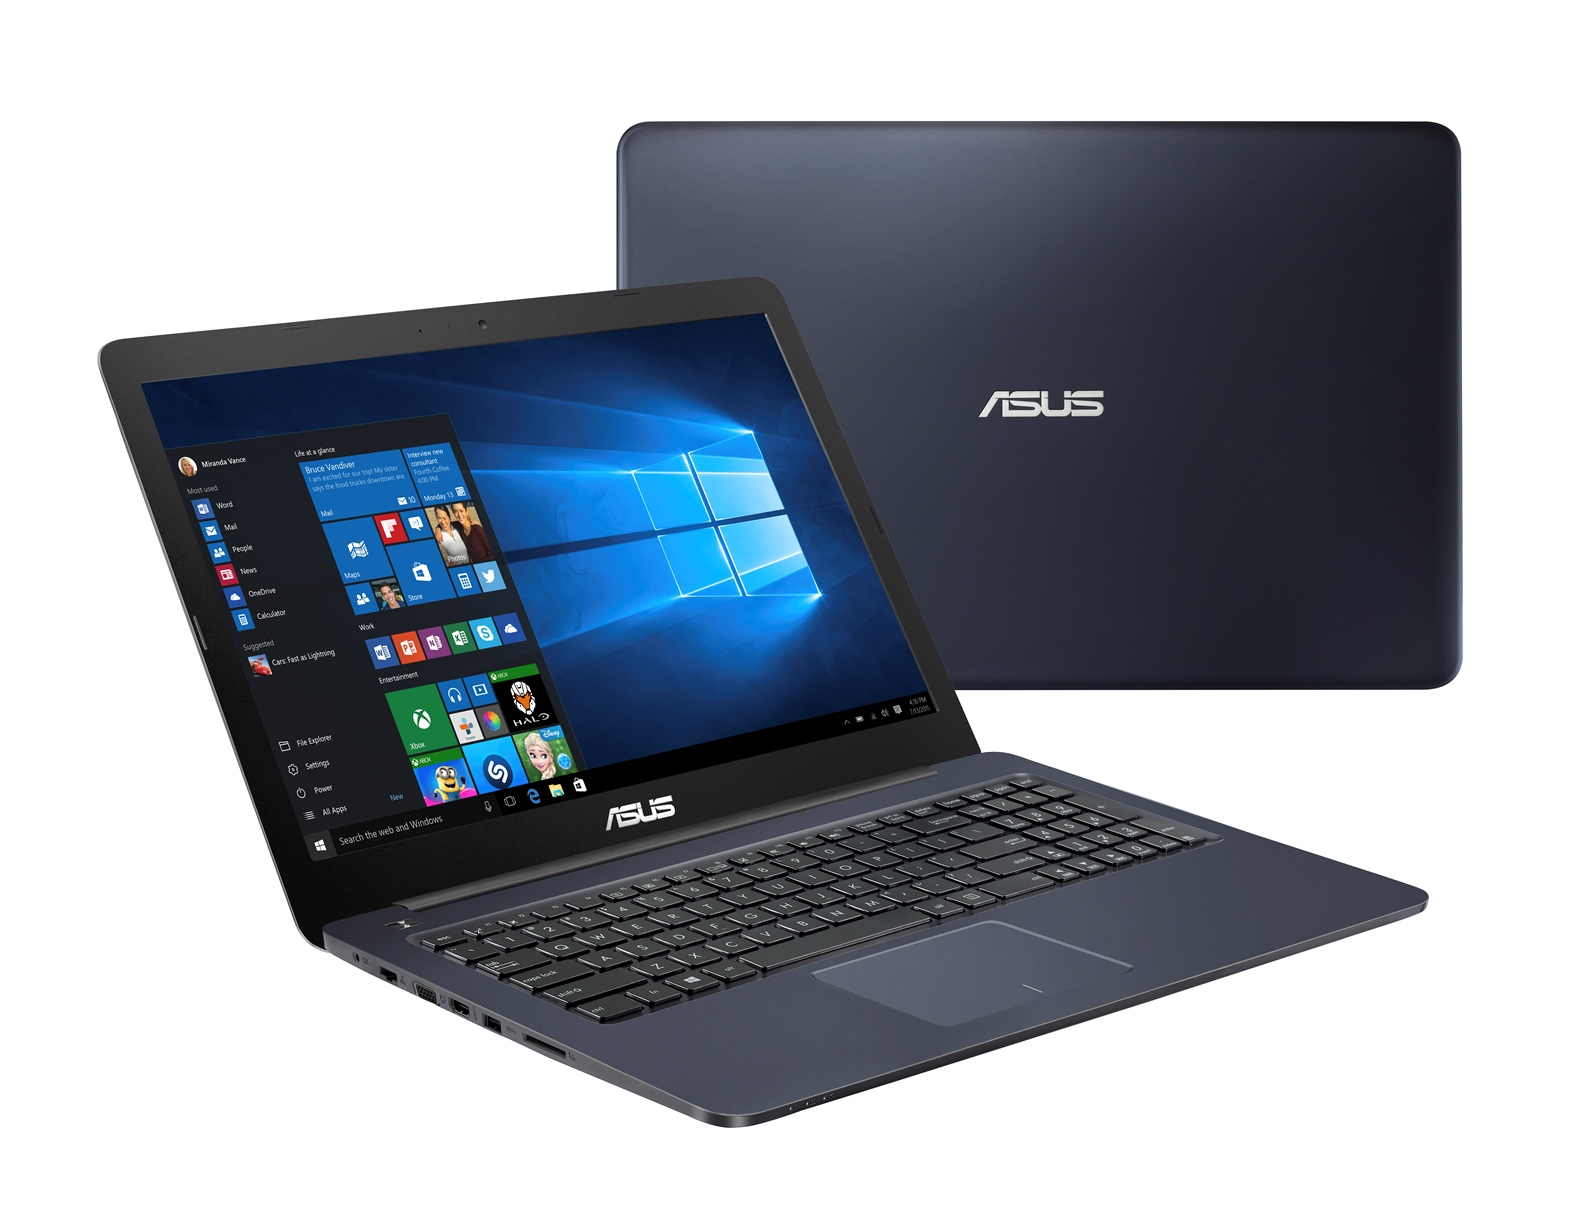 "ASUS E502NA-GO021T Celeron N3350/4GB/500GB/Share Graphics/15,6"" HD LED matný/W10 Home/Blue"